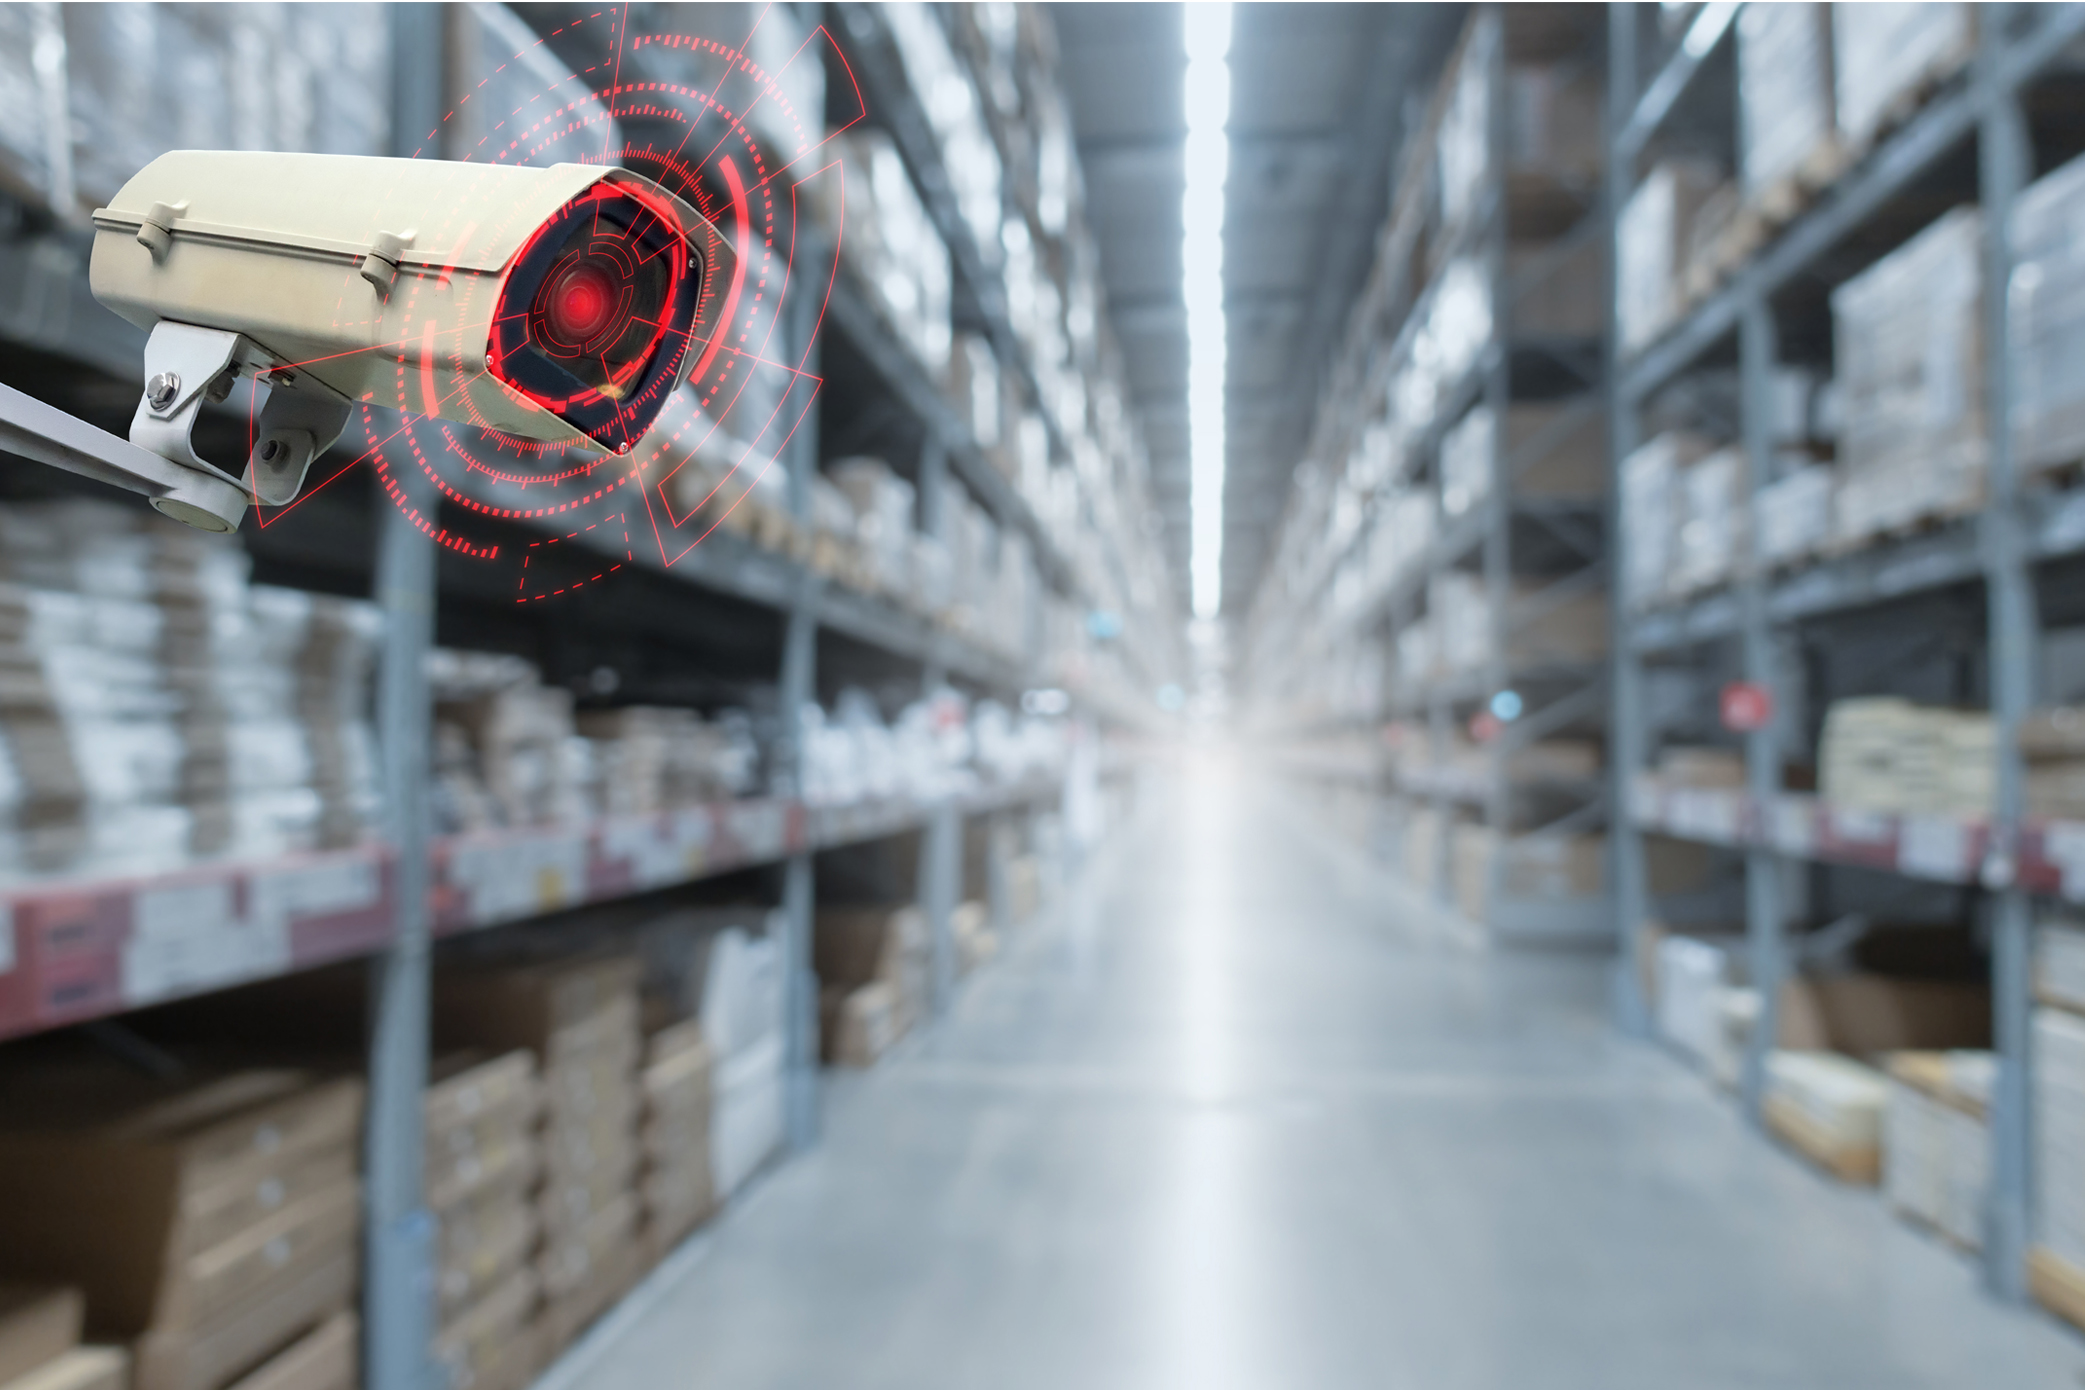 CCTV. security camera motion detect system operating in warehouse interior with product on shelves in shopping mall, cctv solution management , surveillance security, intelligent technology concept